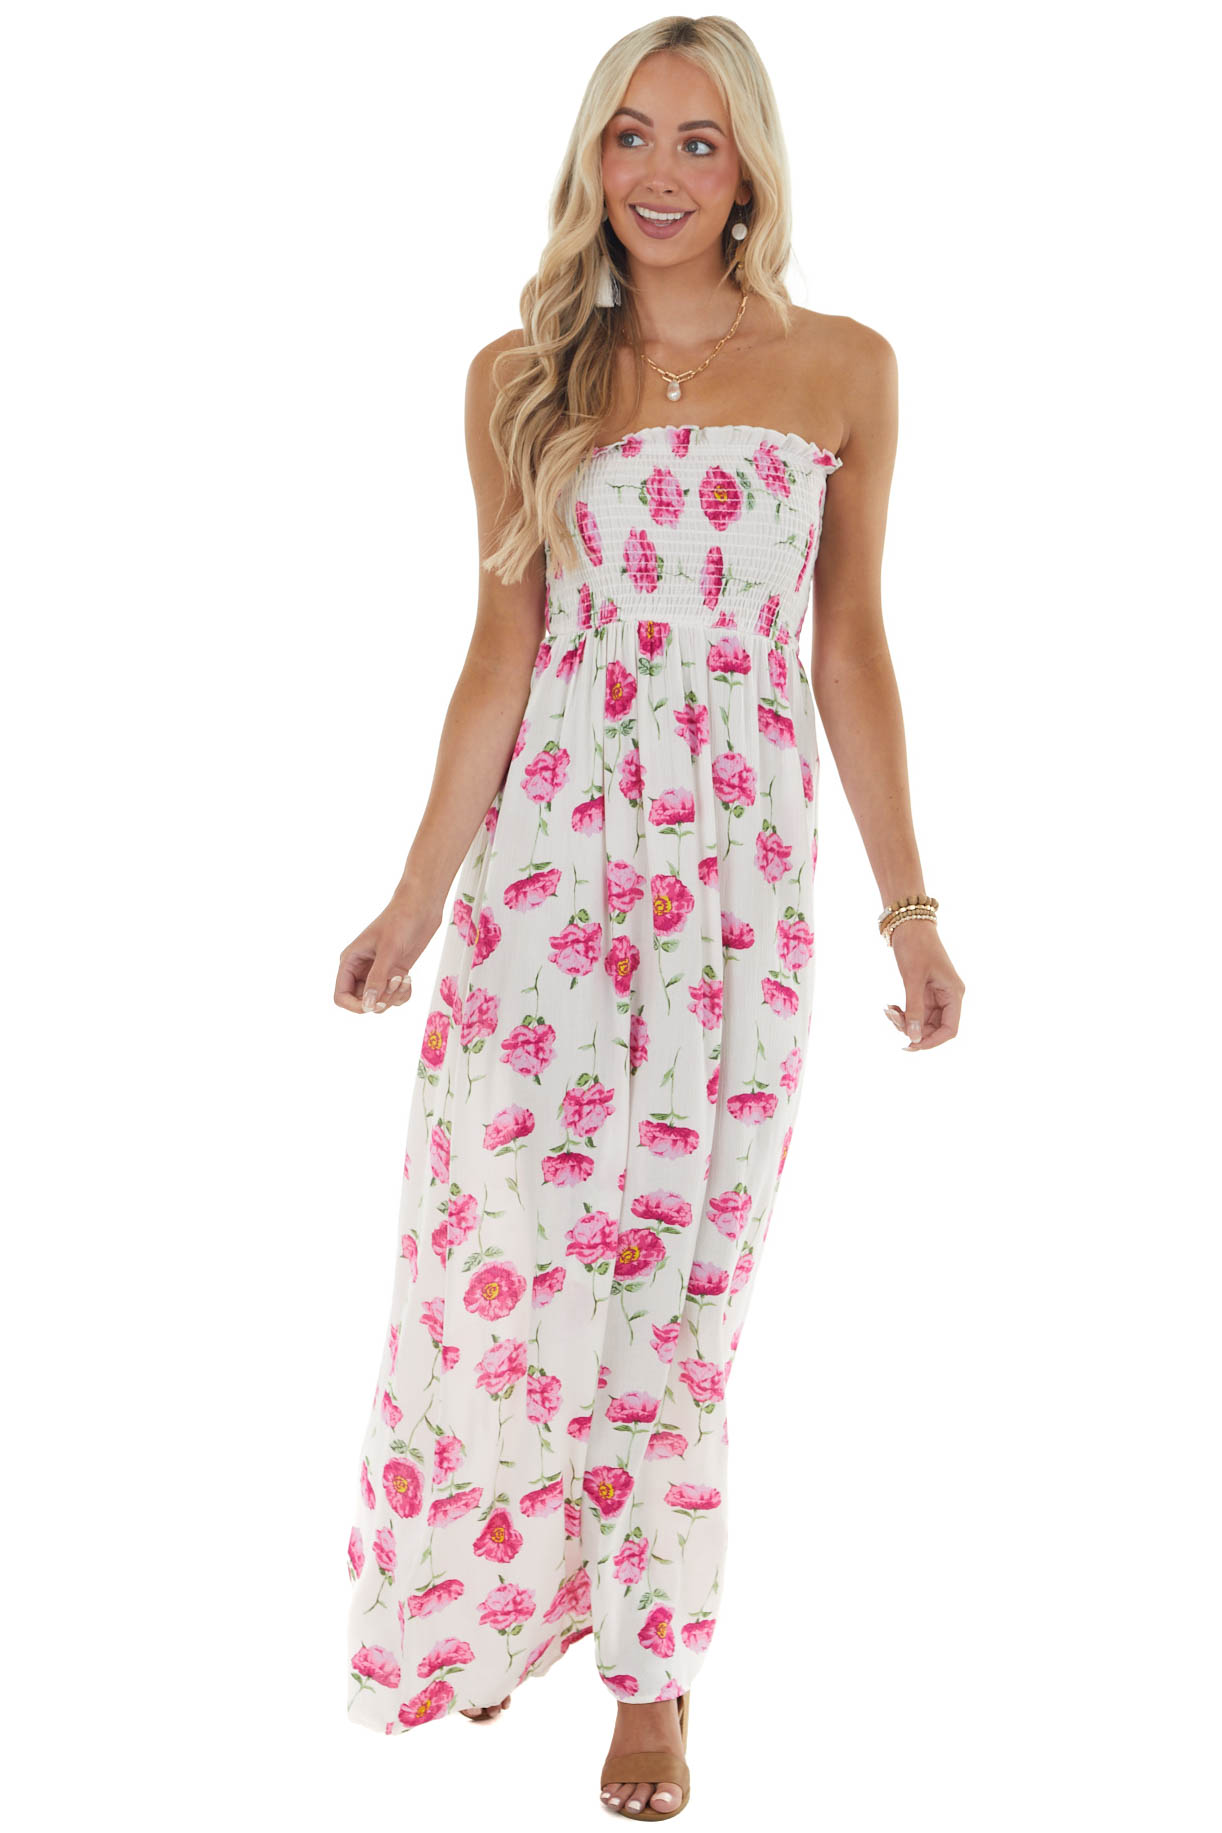 Blush Pink Floral Print Maxi Dress with Smocked Bodice